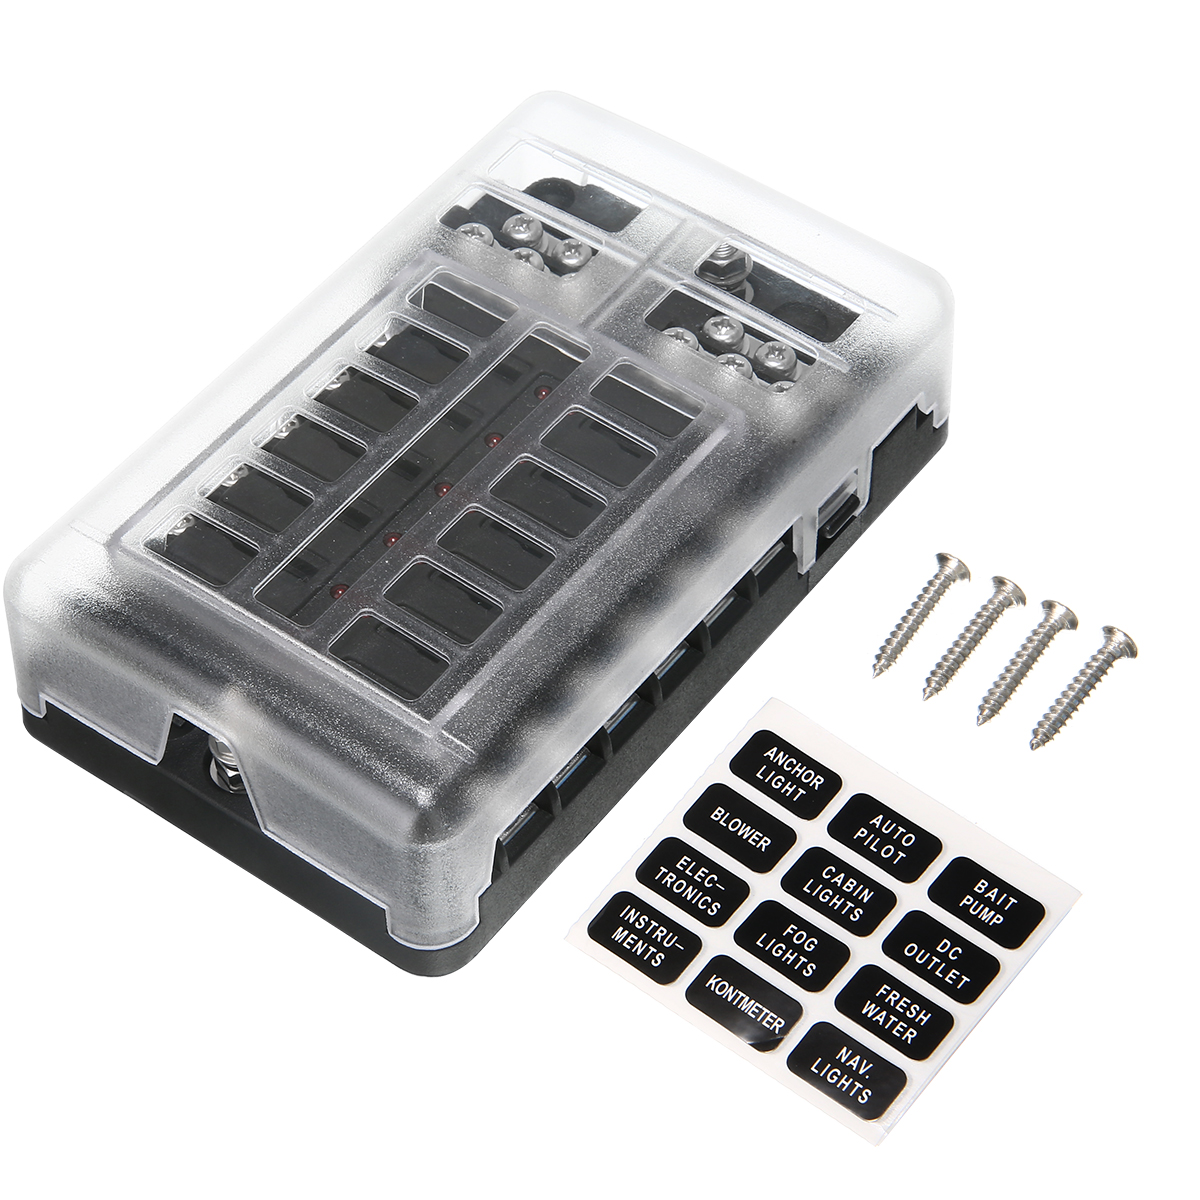 DC 12-32V 100A 12 Way Fuse Box Car Truck Boat Bus Power Distribution Block Double Busbars 12-way with screws&labels